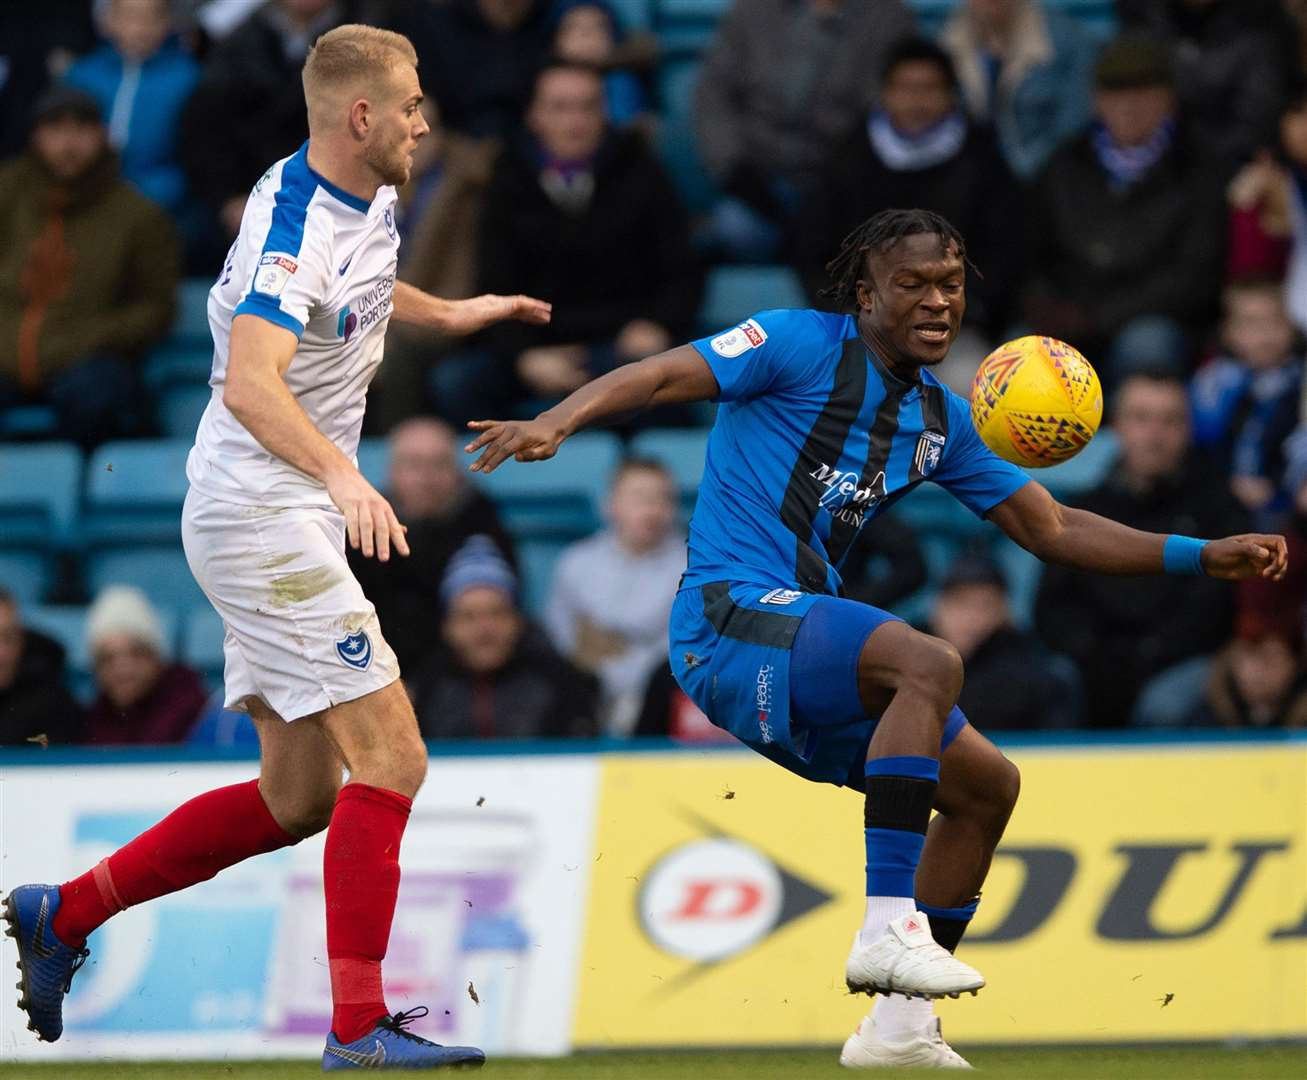 Gillingham debutant Noel Mbo looks to get the ball under control against Jack Whatmough. Picture: Ady Kerry